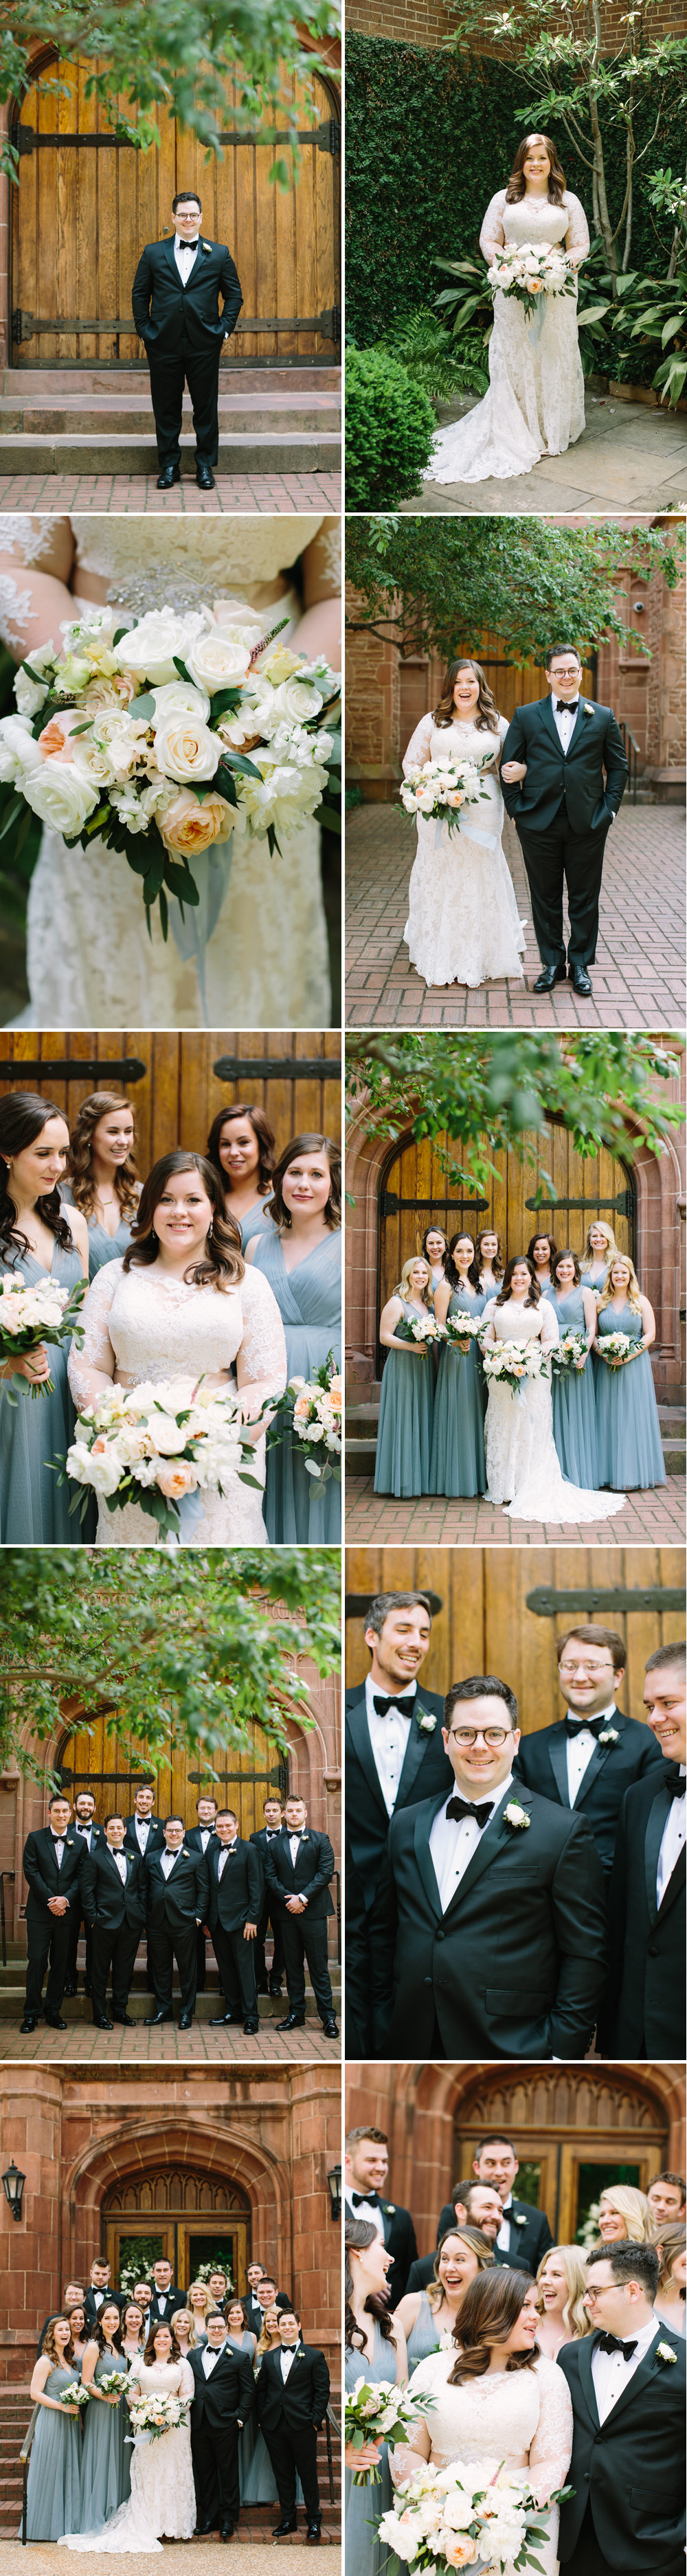 Nashville_Wedding_Photographers_Rachel_Moore_3.jpg